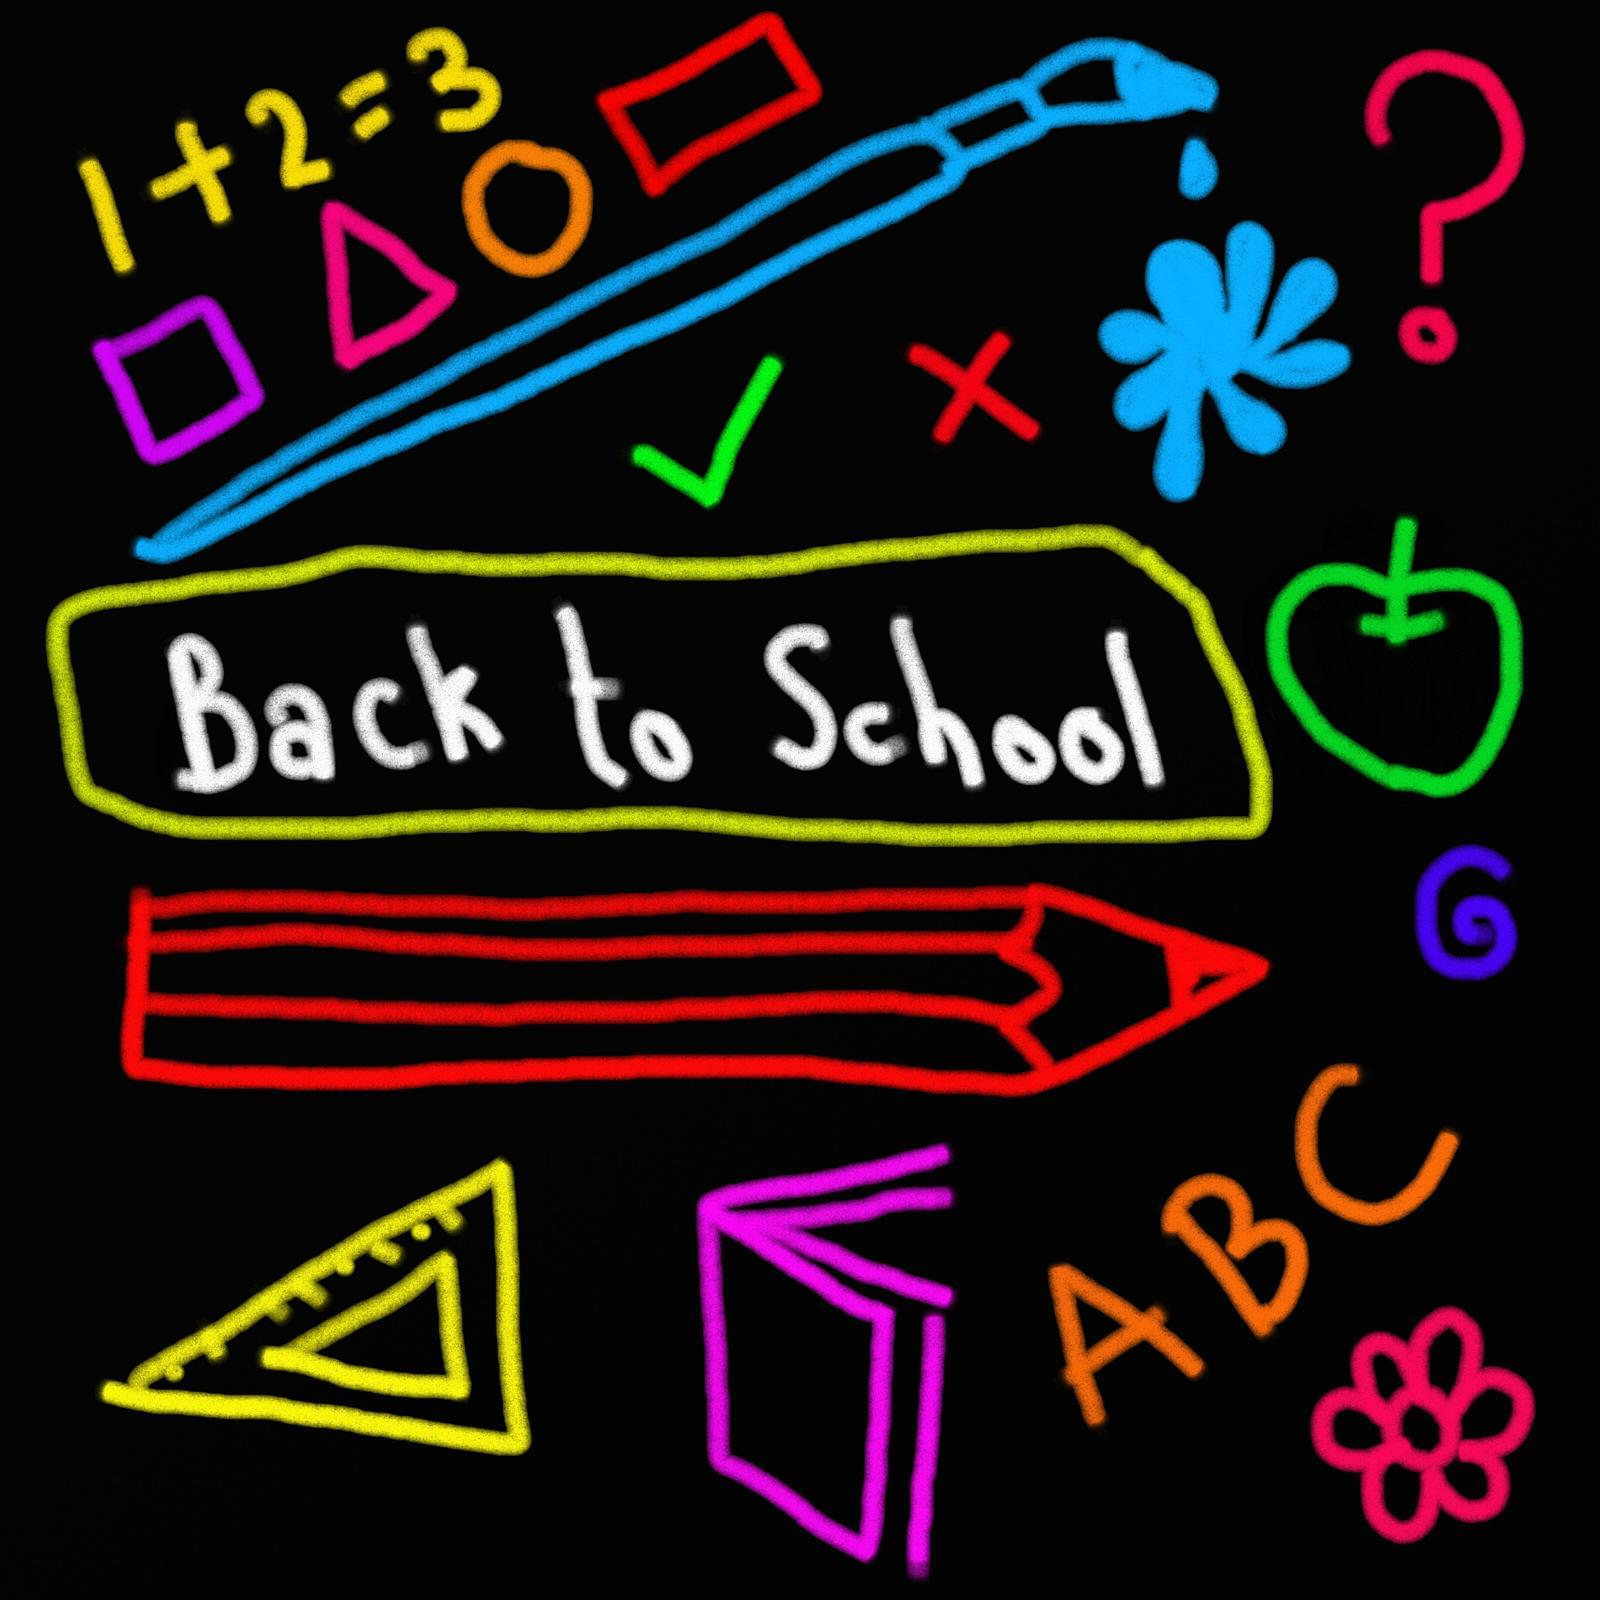 back-to-school-11